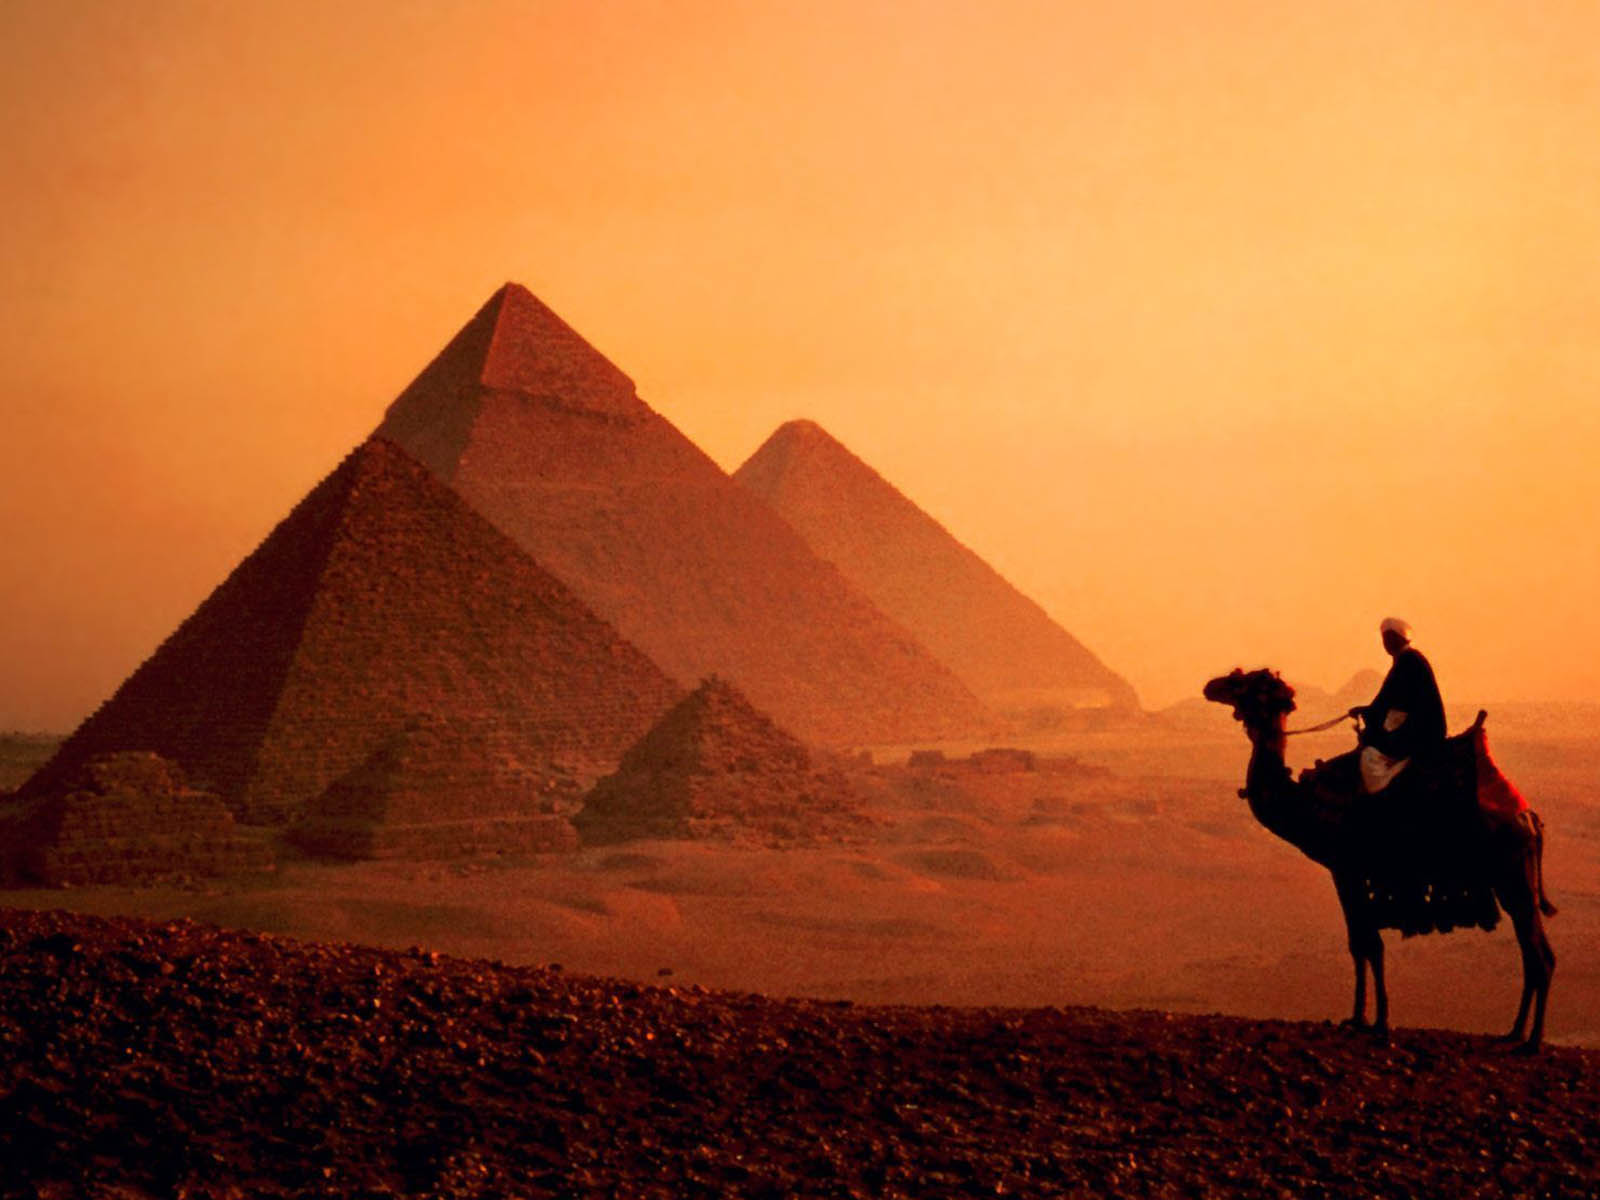 egypt desktop wallpaper - photo #5